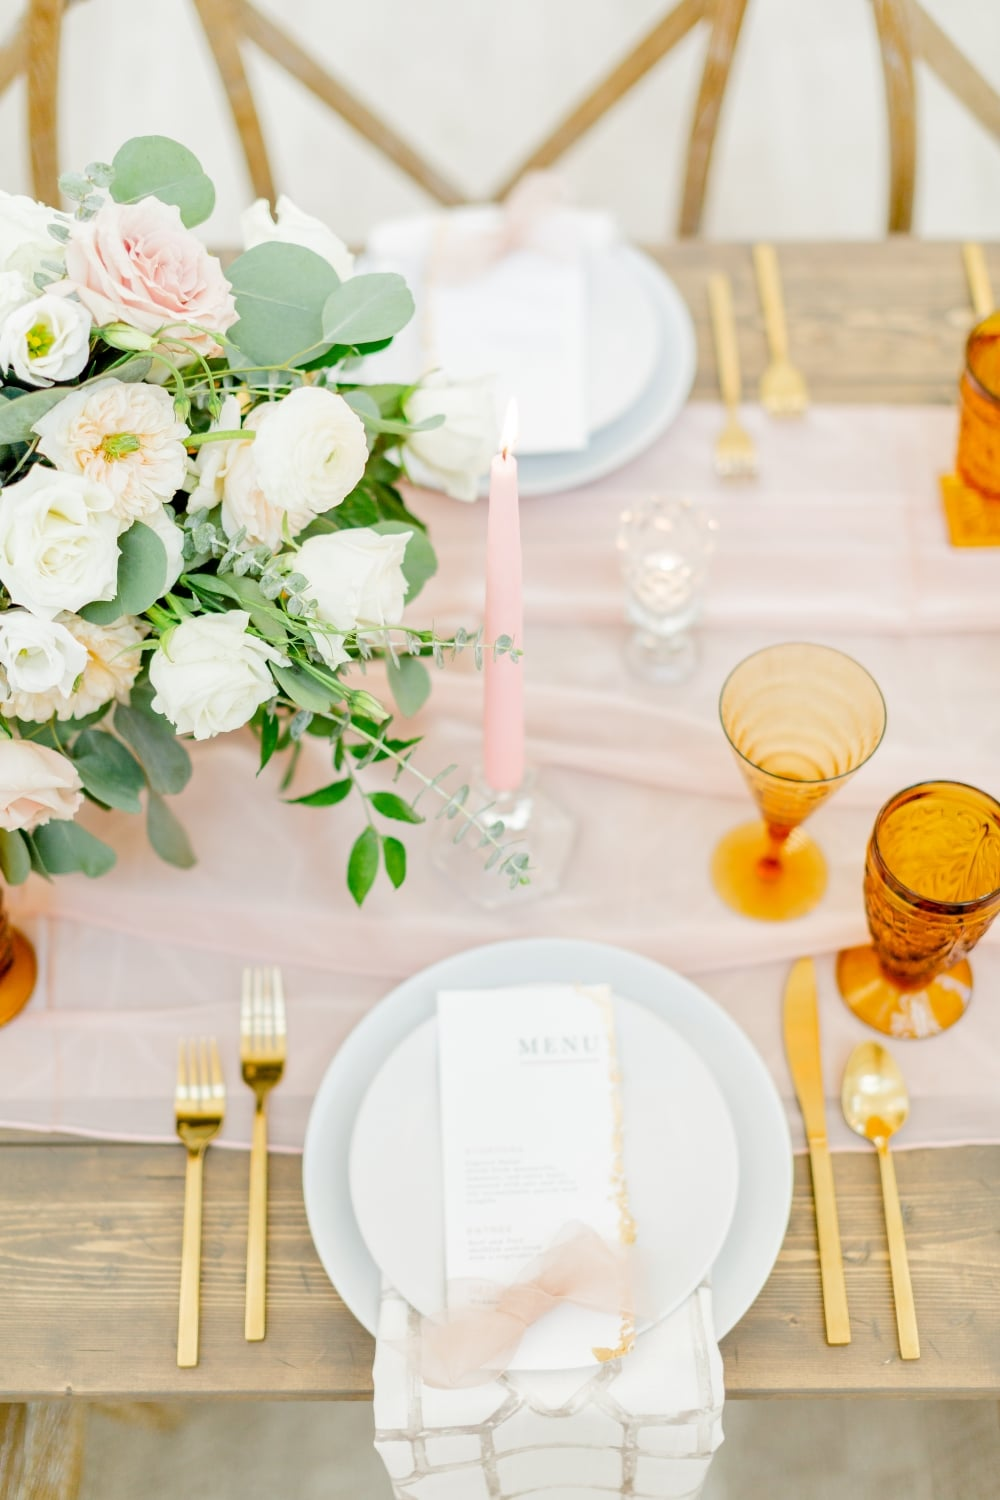 menu on top of table setting with pin runner